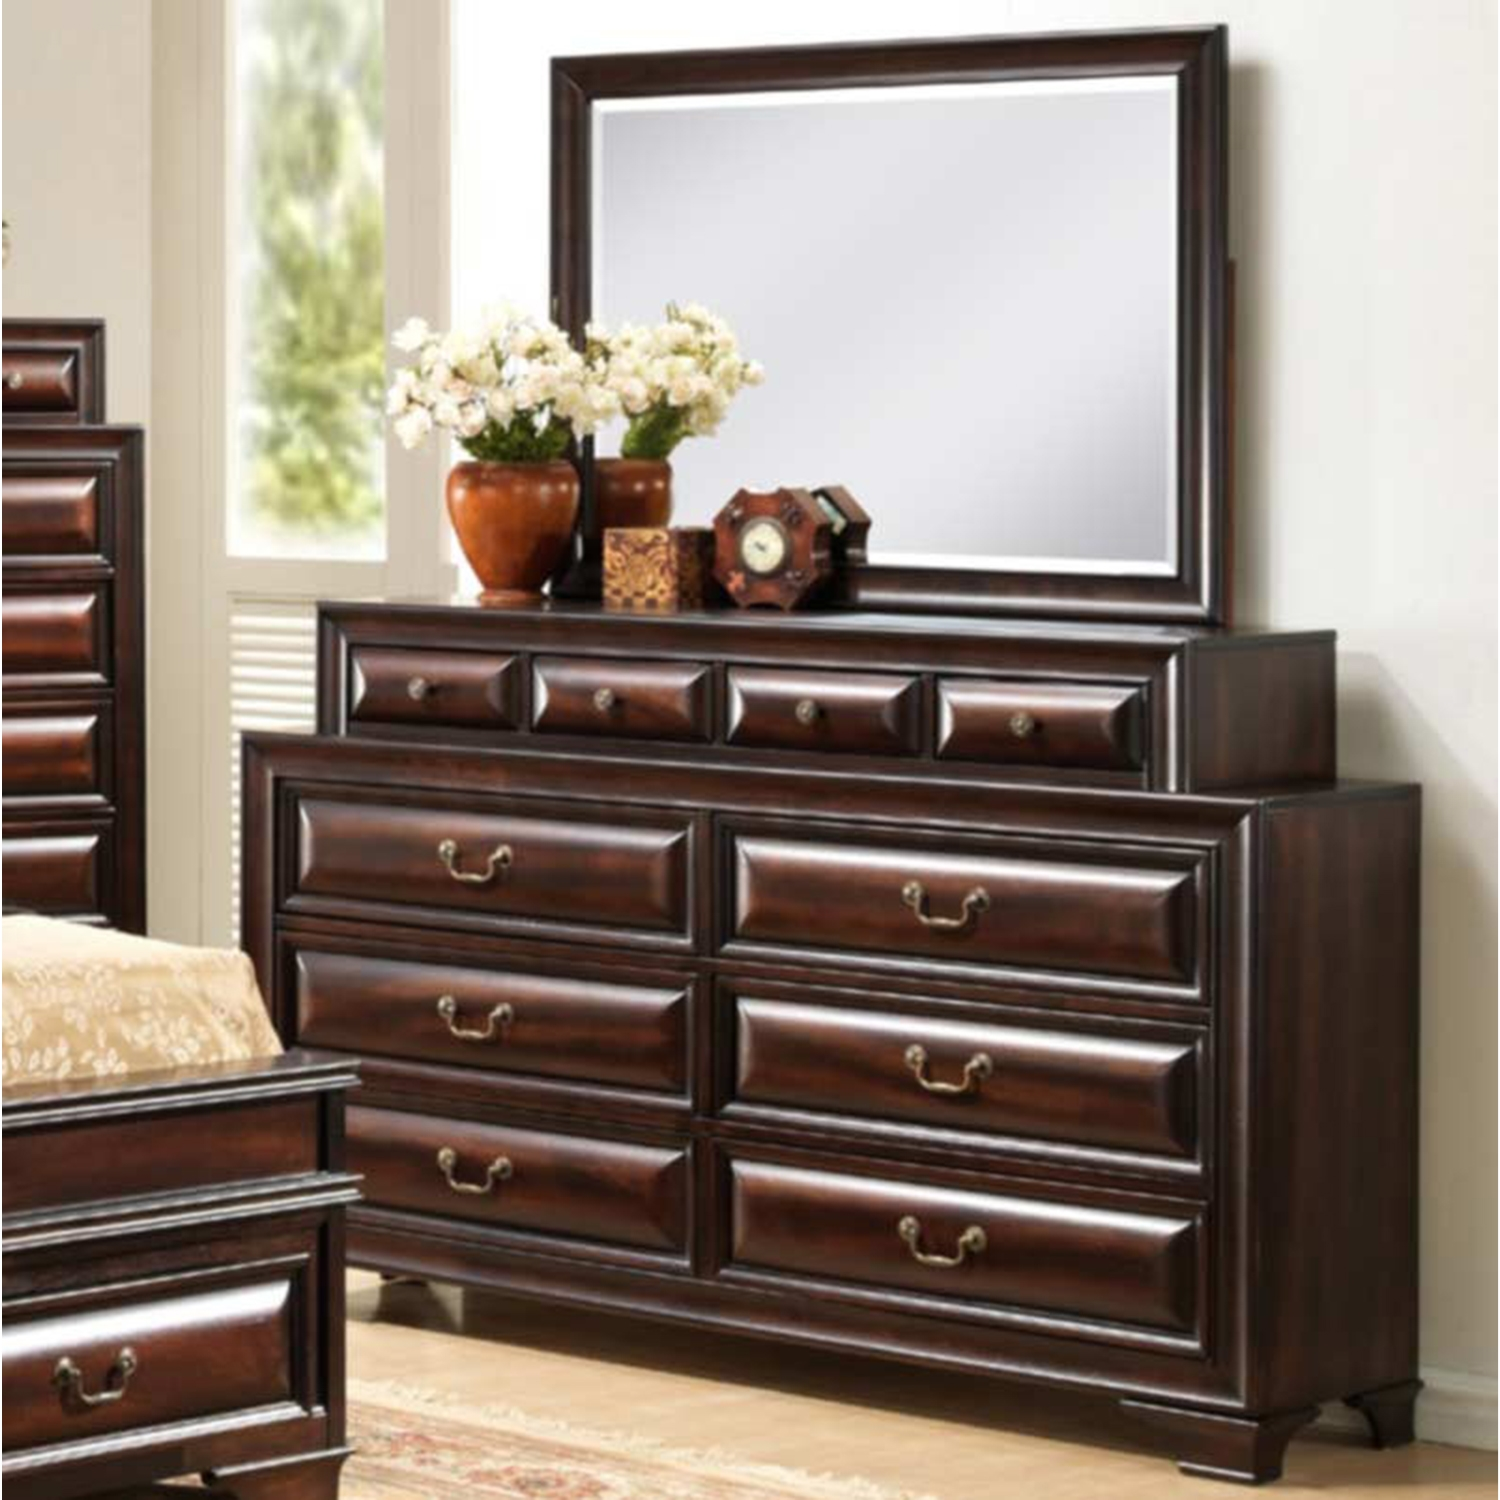 Sarina Bedroom Set in Varnish Oak - GLO-SARINA-033A-M-SET